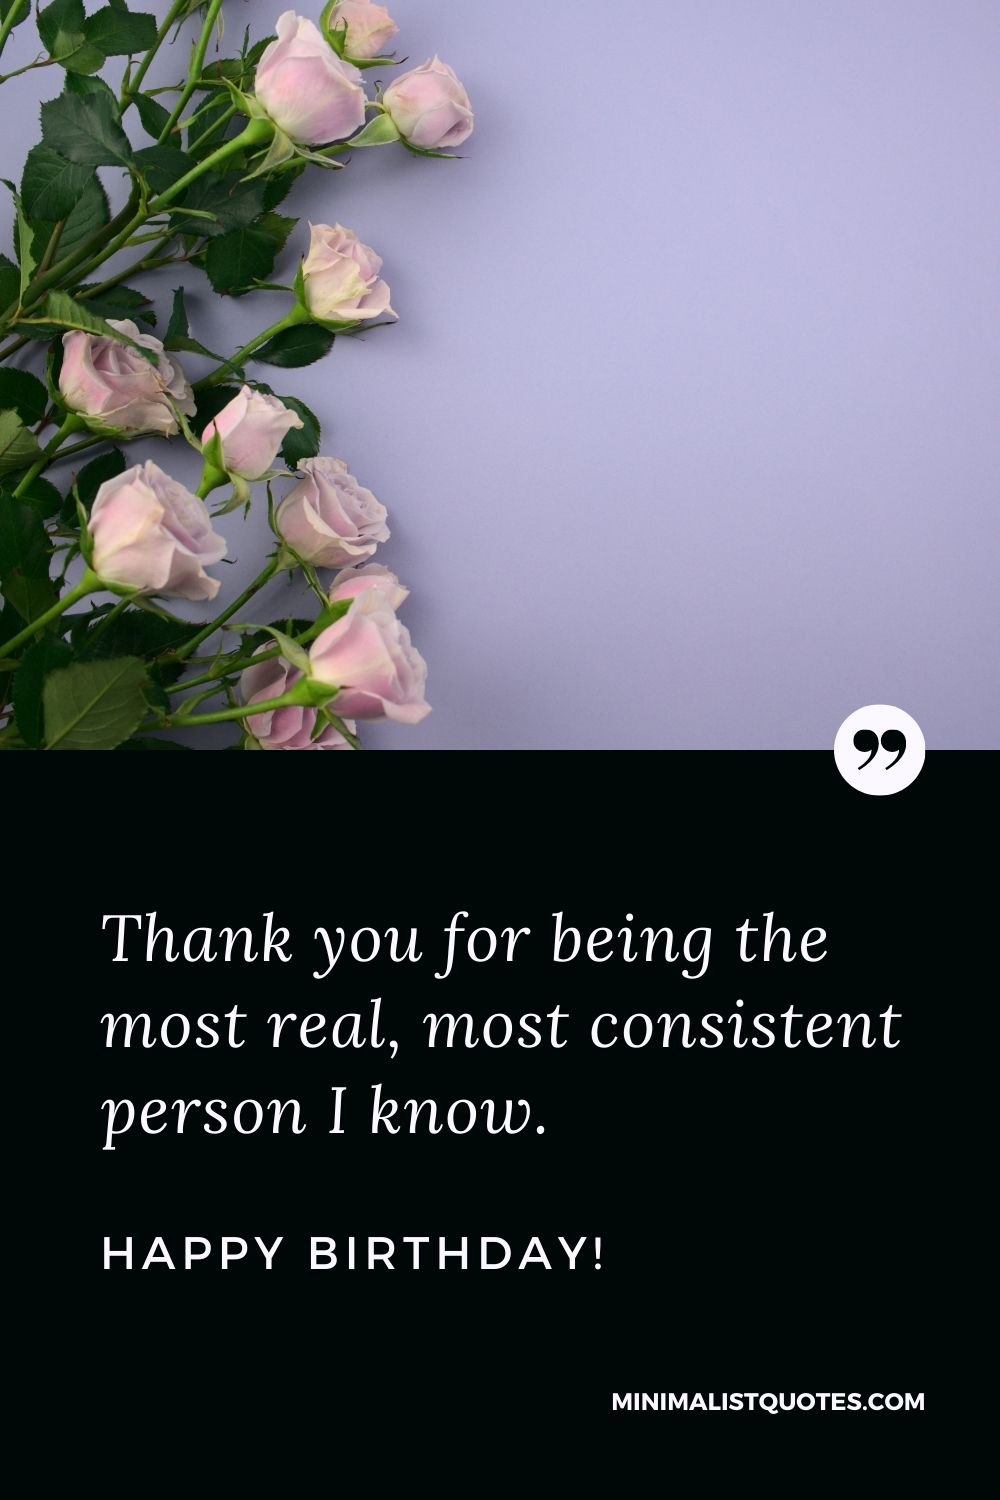 Birthday Quote, Wish & Message With Image: Thank you for being the most real, most consistent person I know. Happy Birthday!